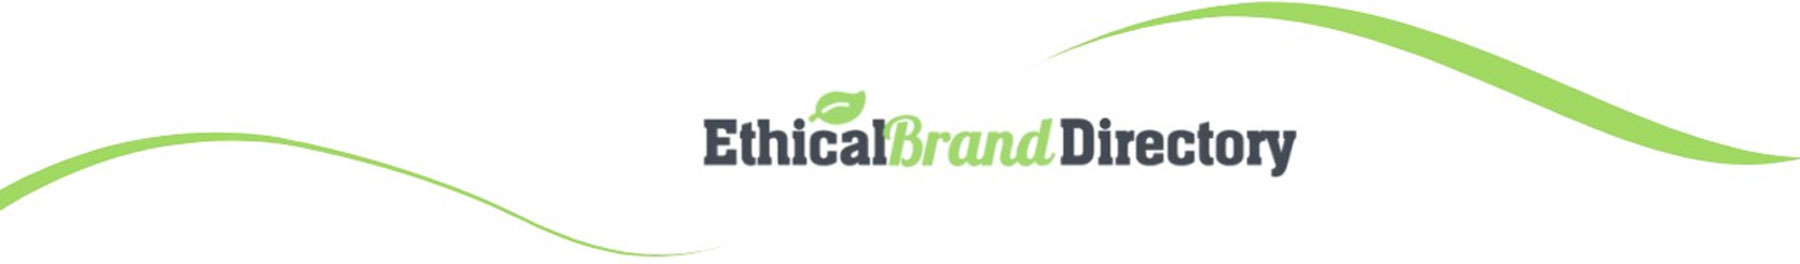 Ethical Brand Directory | Roberta Style Lee